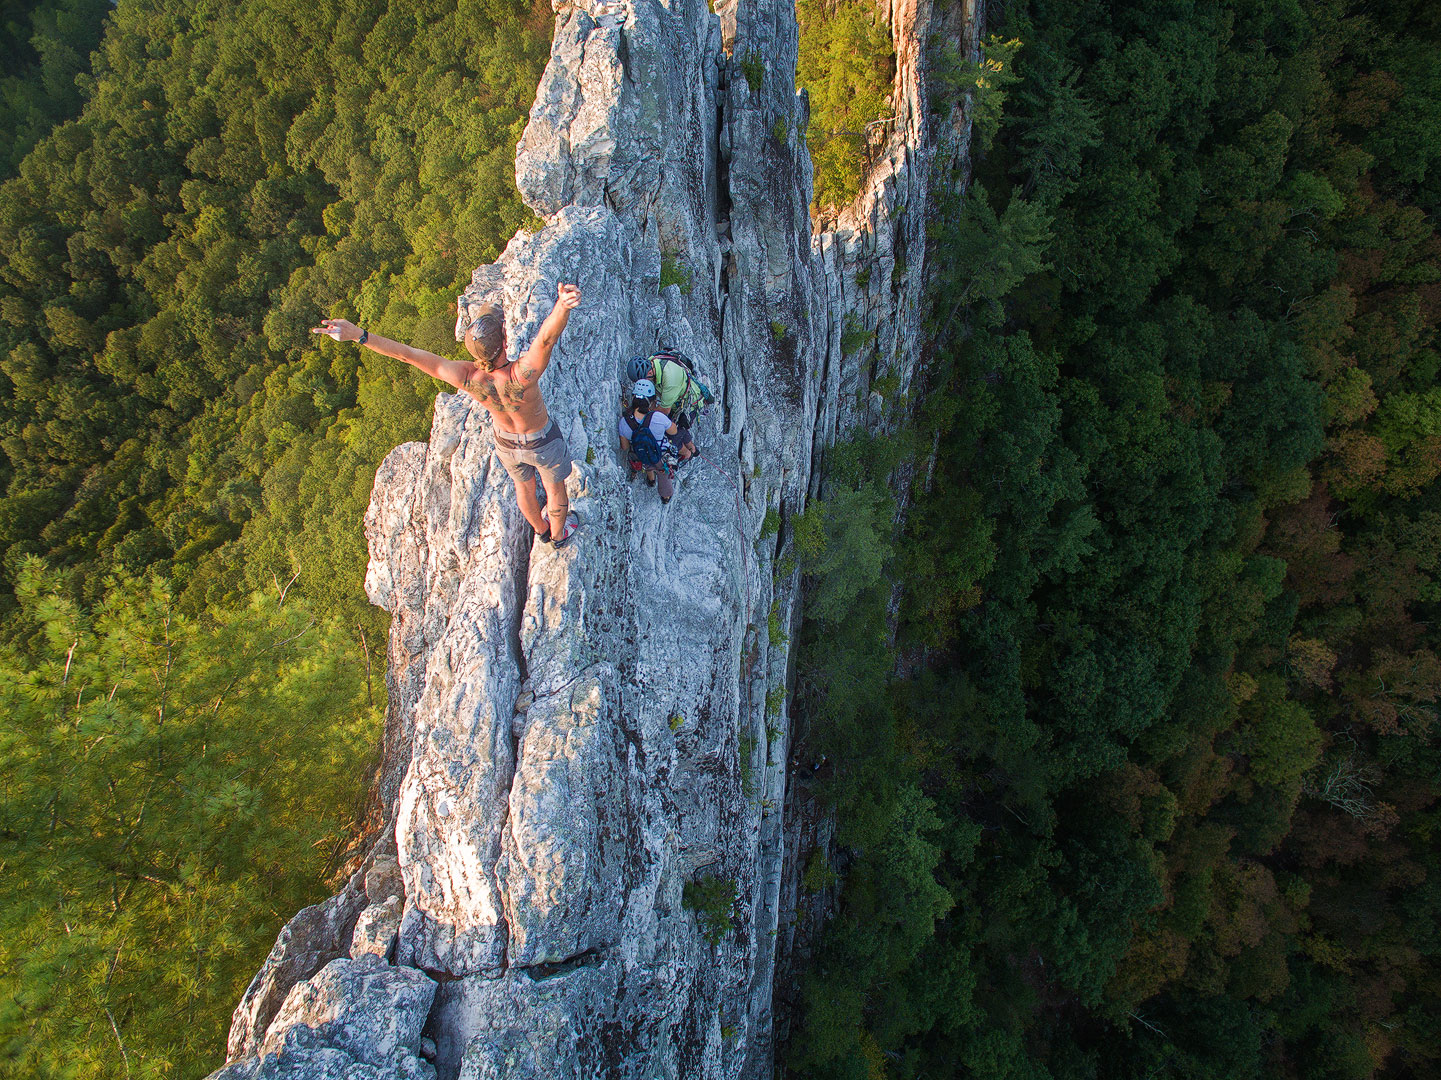 Ascension, Seneca Rocks, West Virginia,  	aerial, photos, drone, dji, phantom 3, bernard chen, timescapes, photo